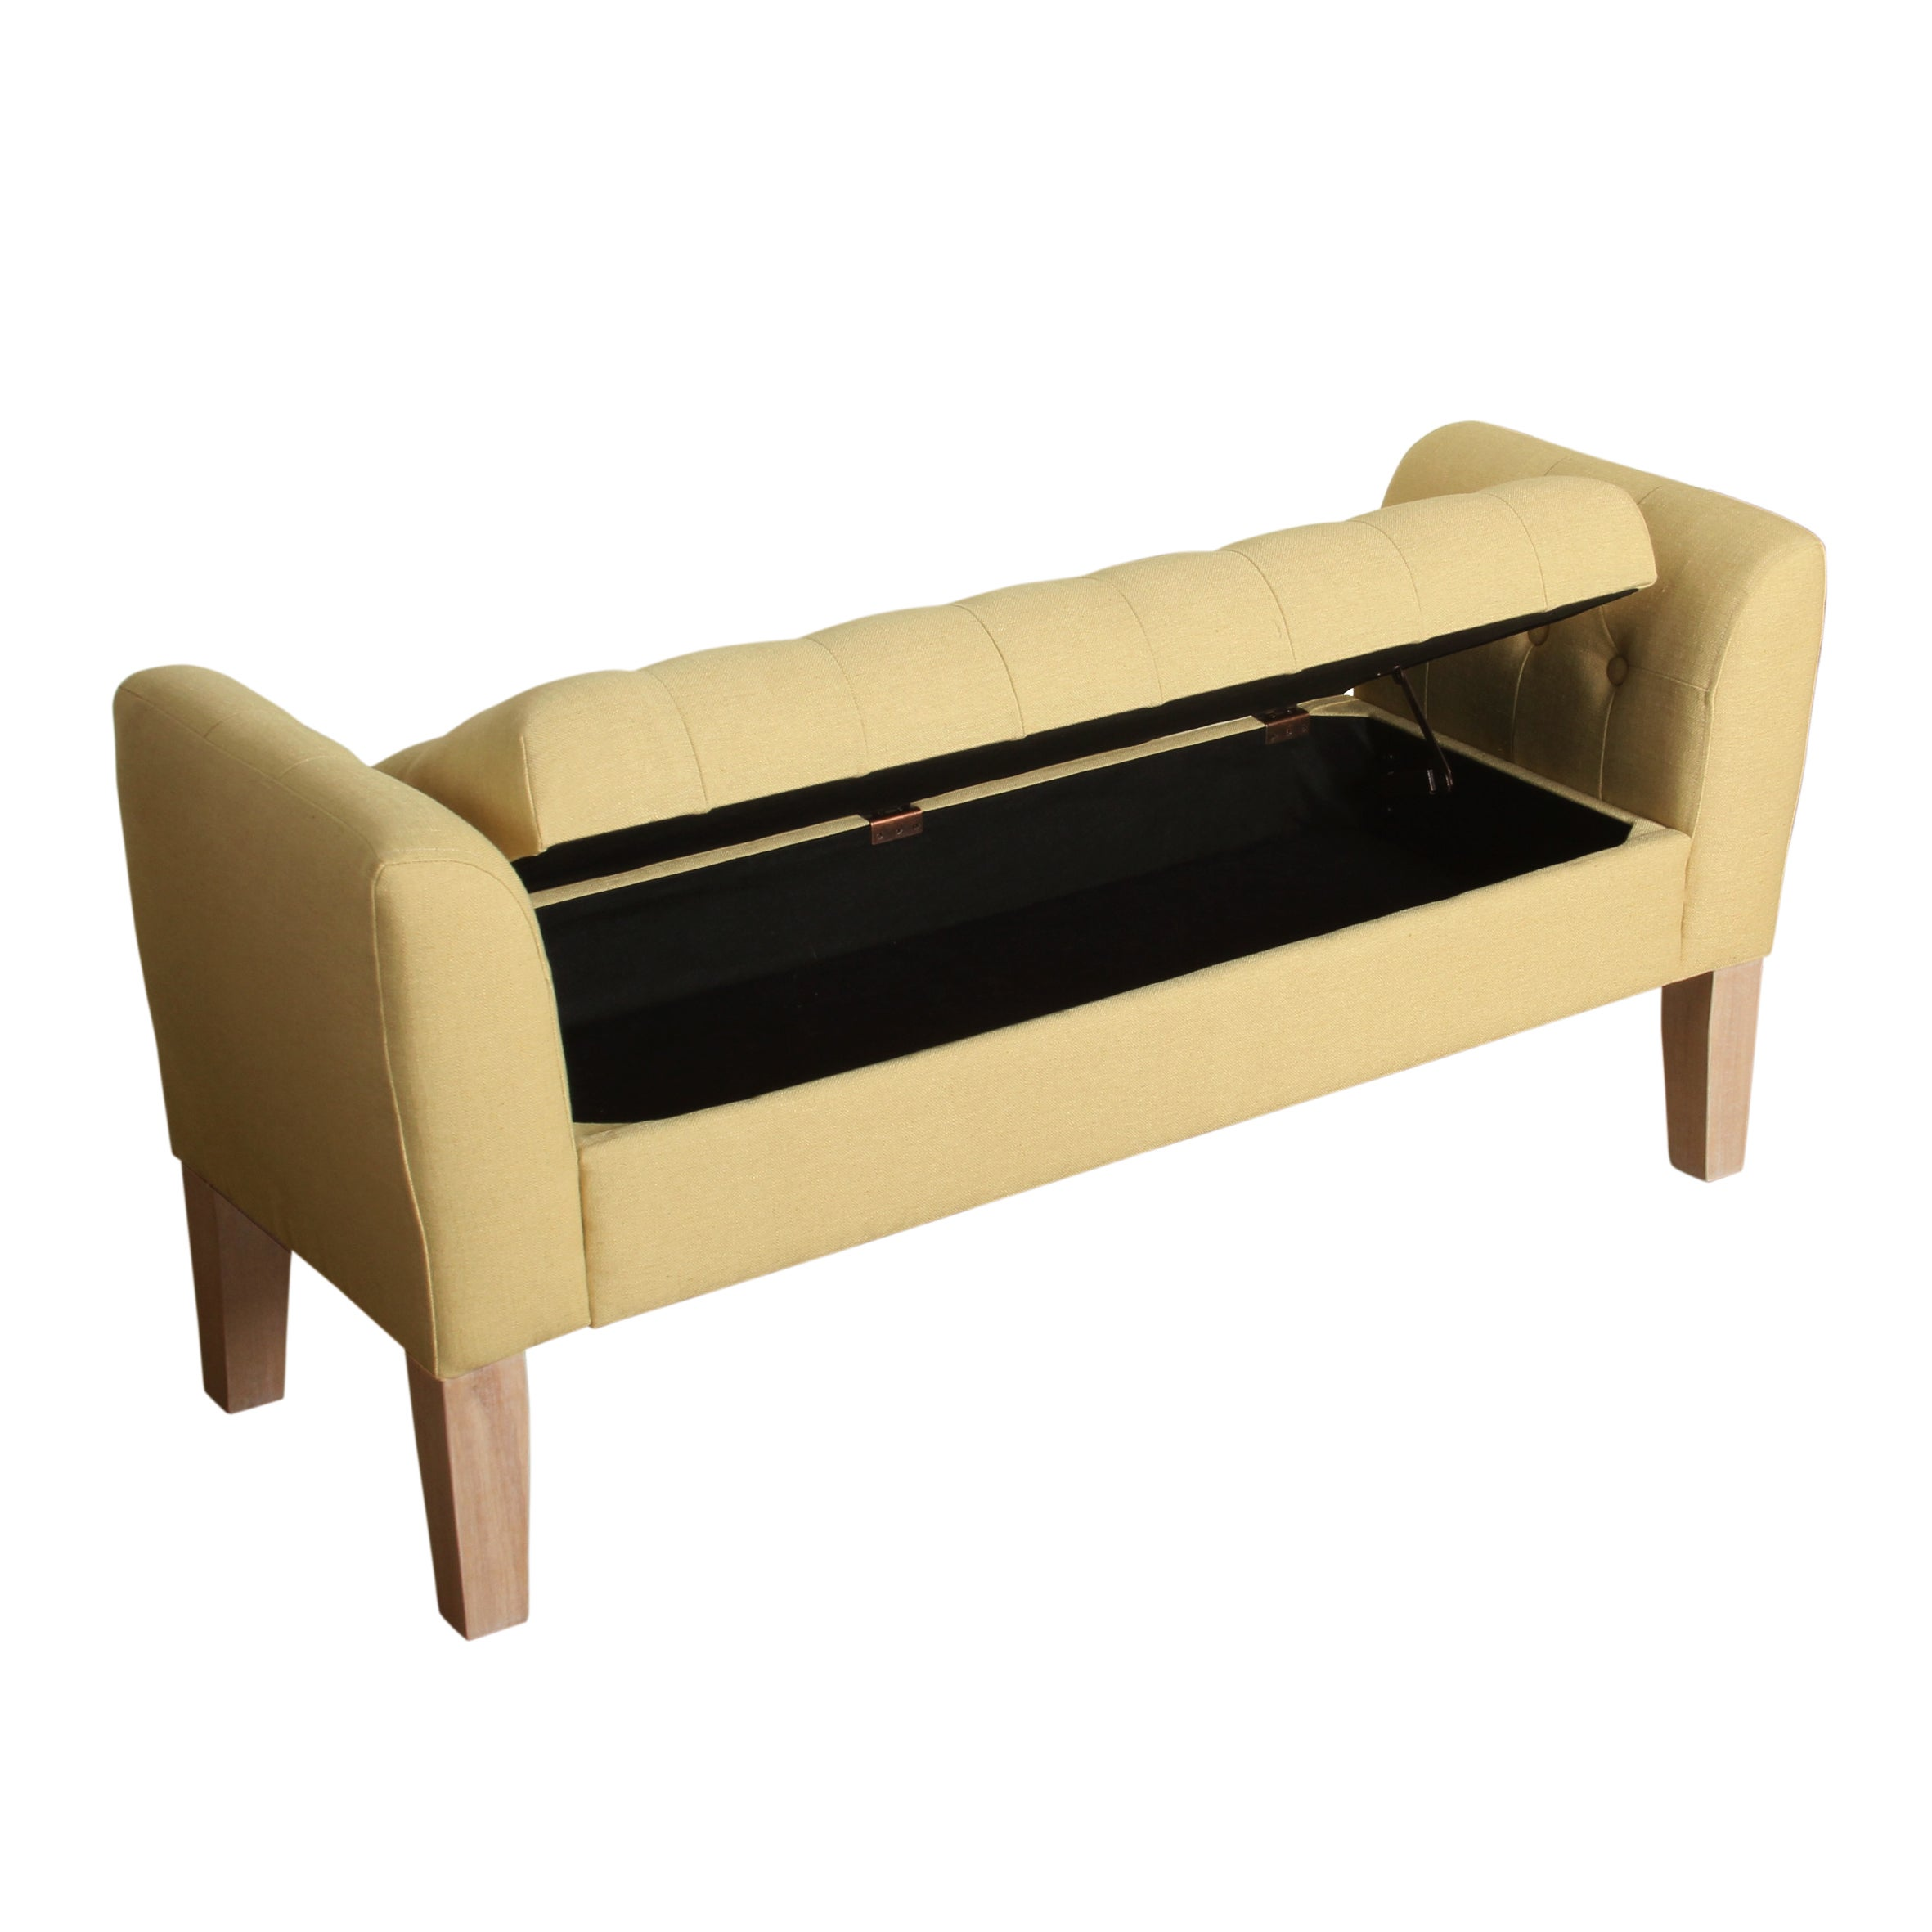 Homepop Kate Tufted Storage Bench Settee Soft Yellow Free Shipping Today 12138395